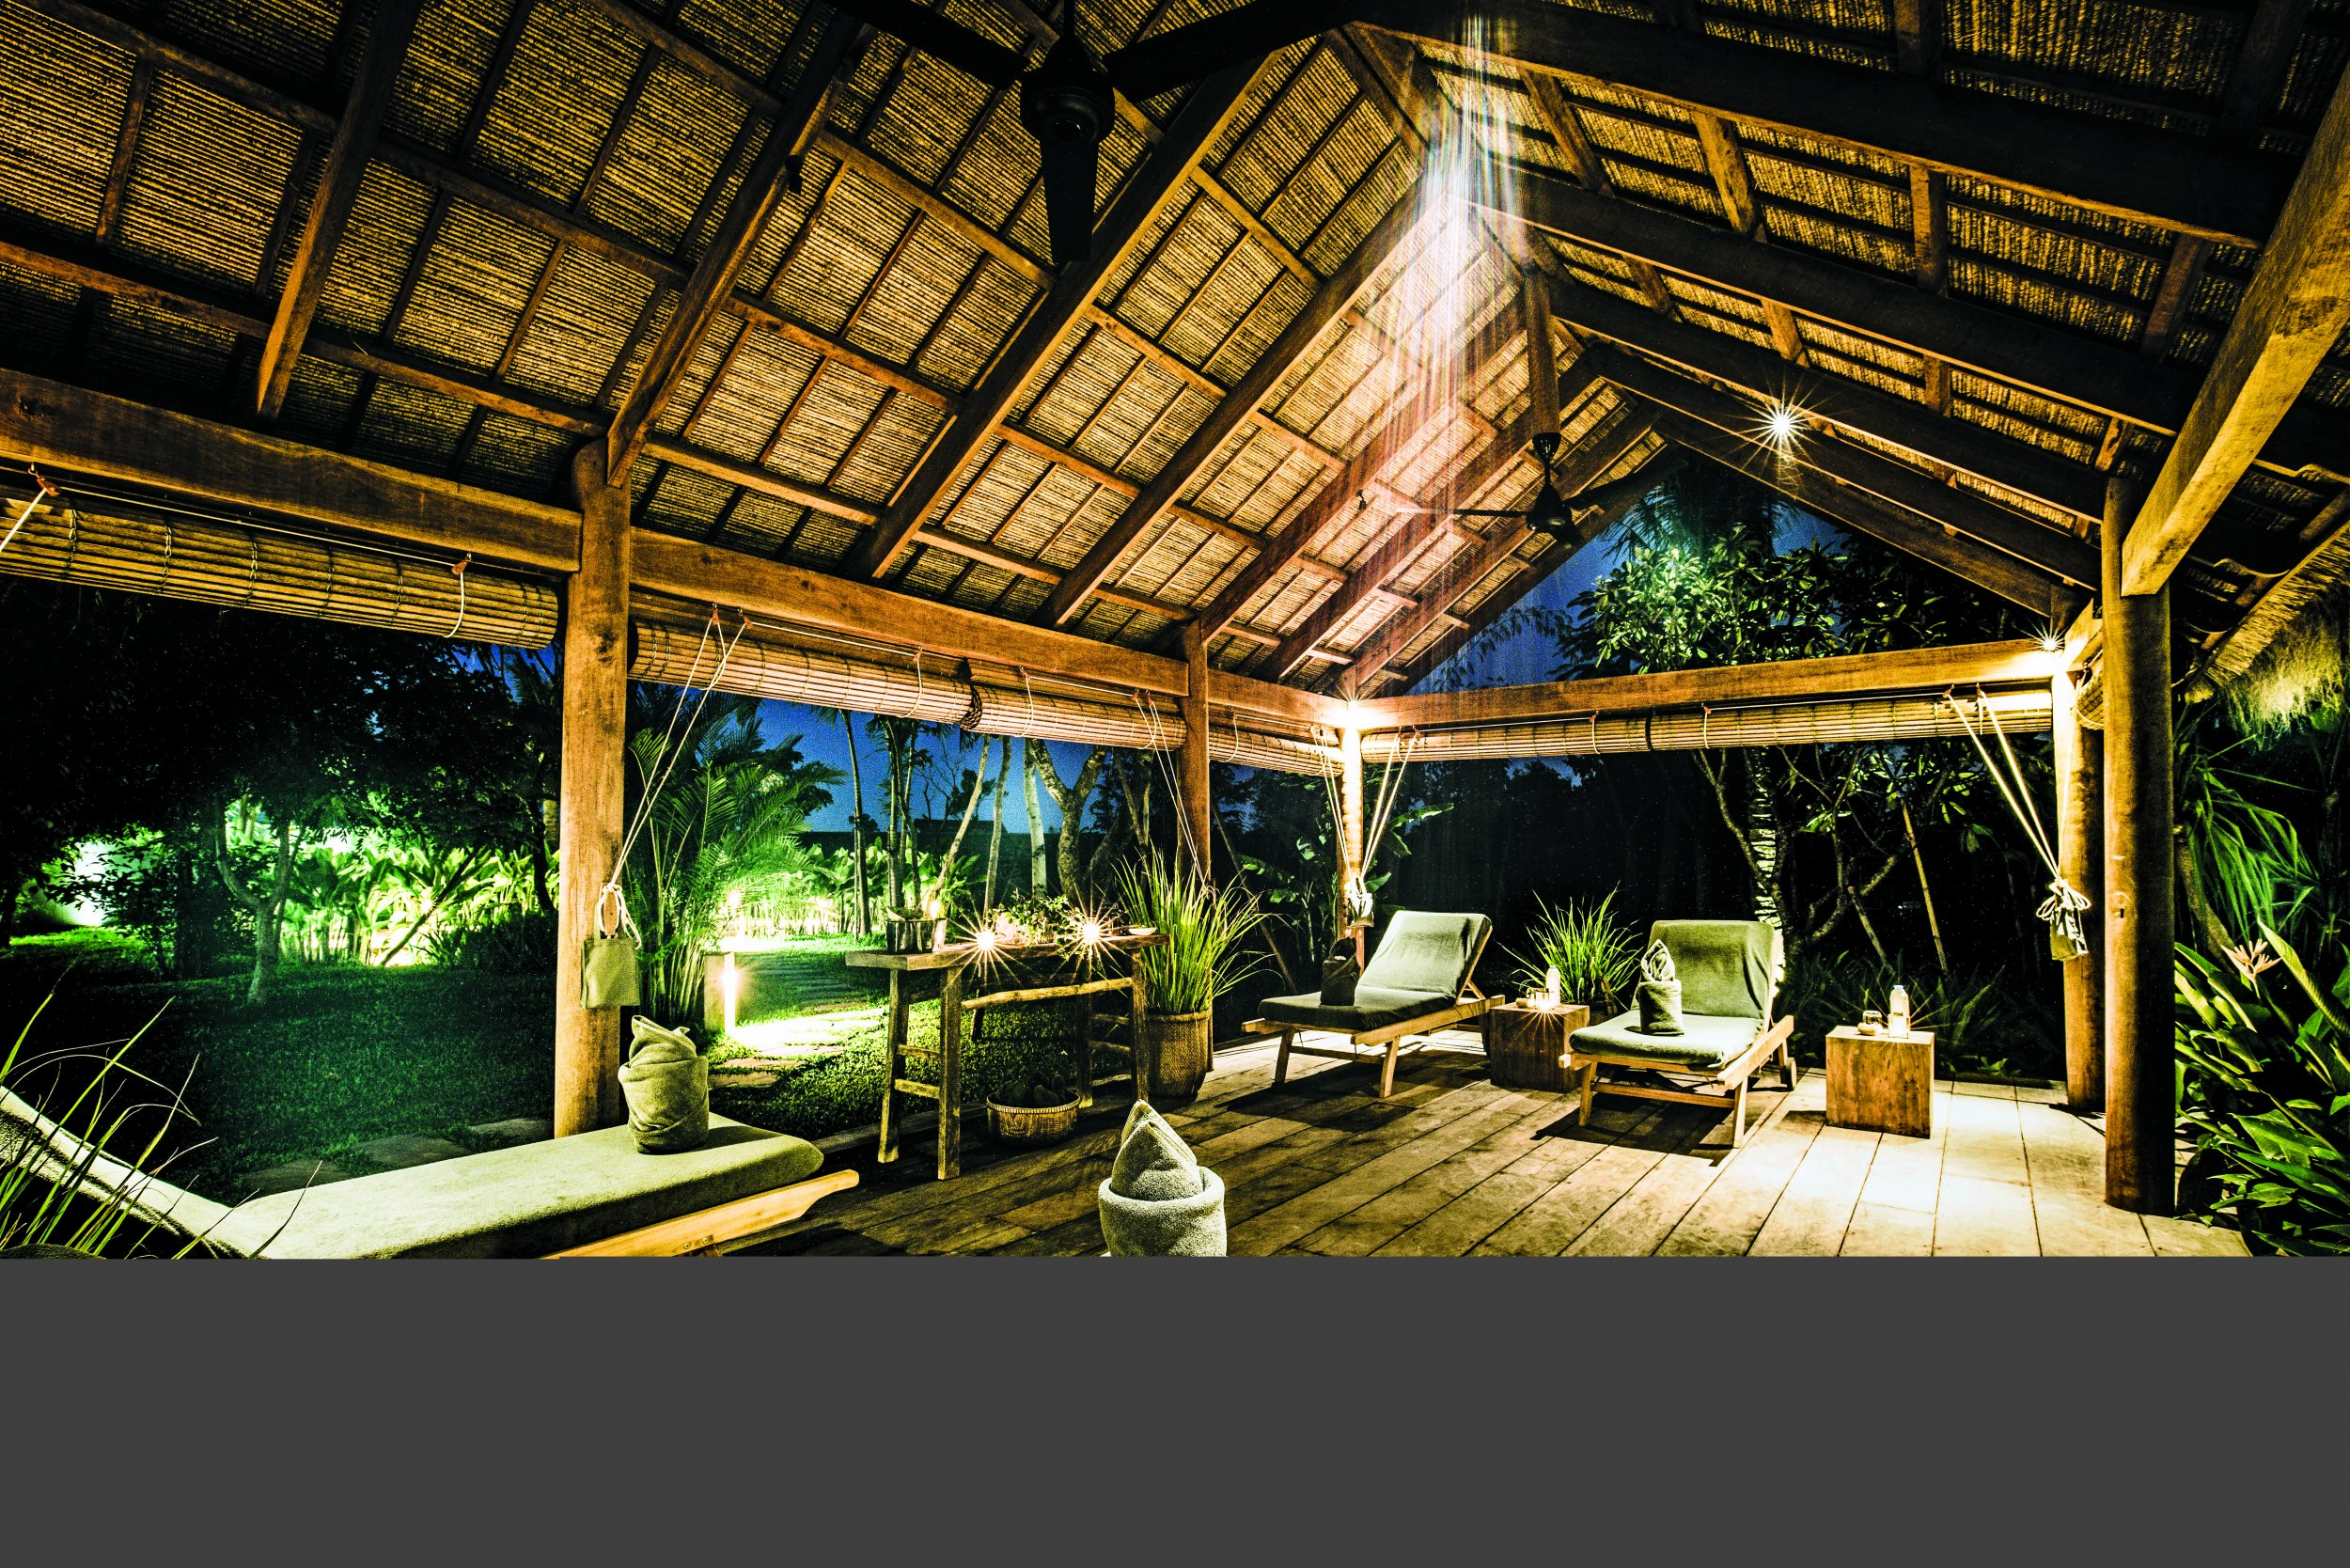 Famed Cambodian Temples Meet Modern, Luxury Accommodations